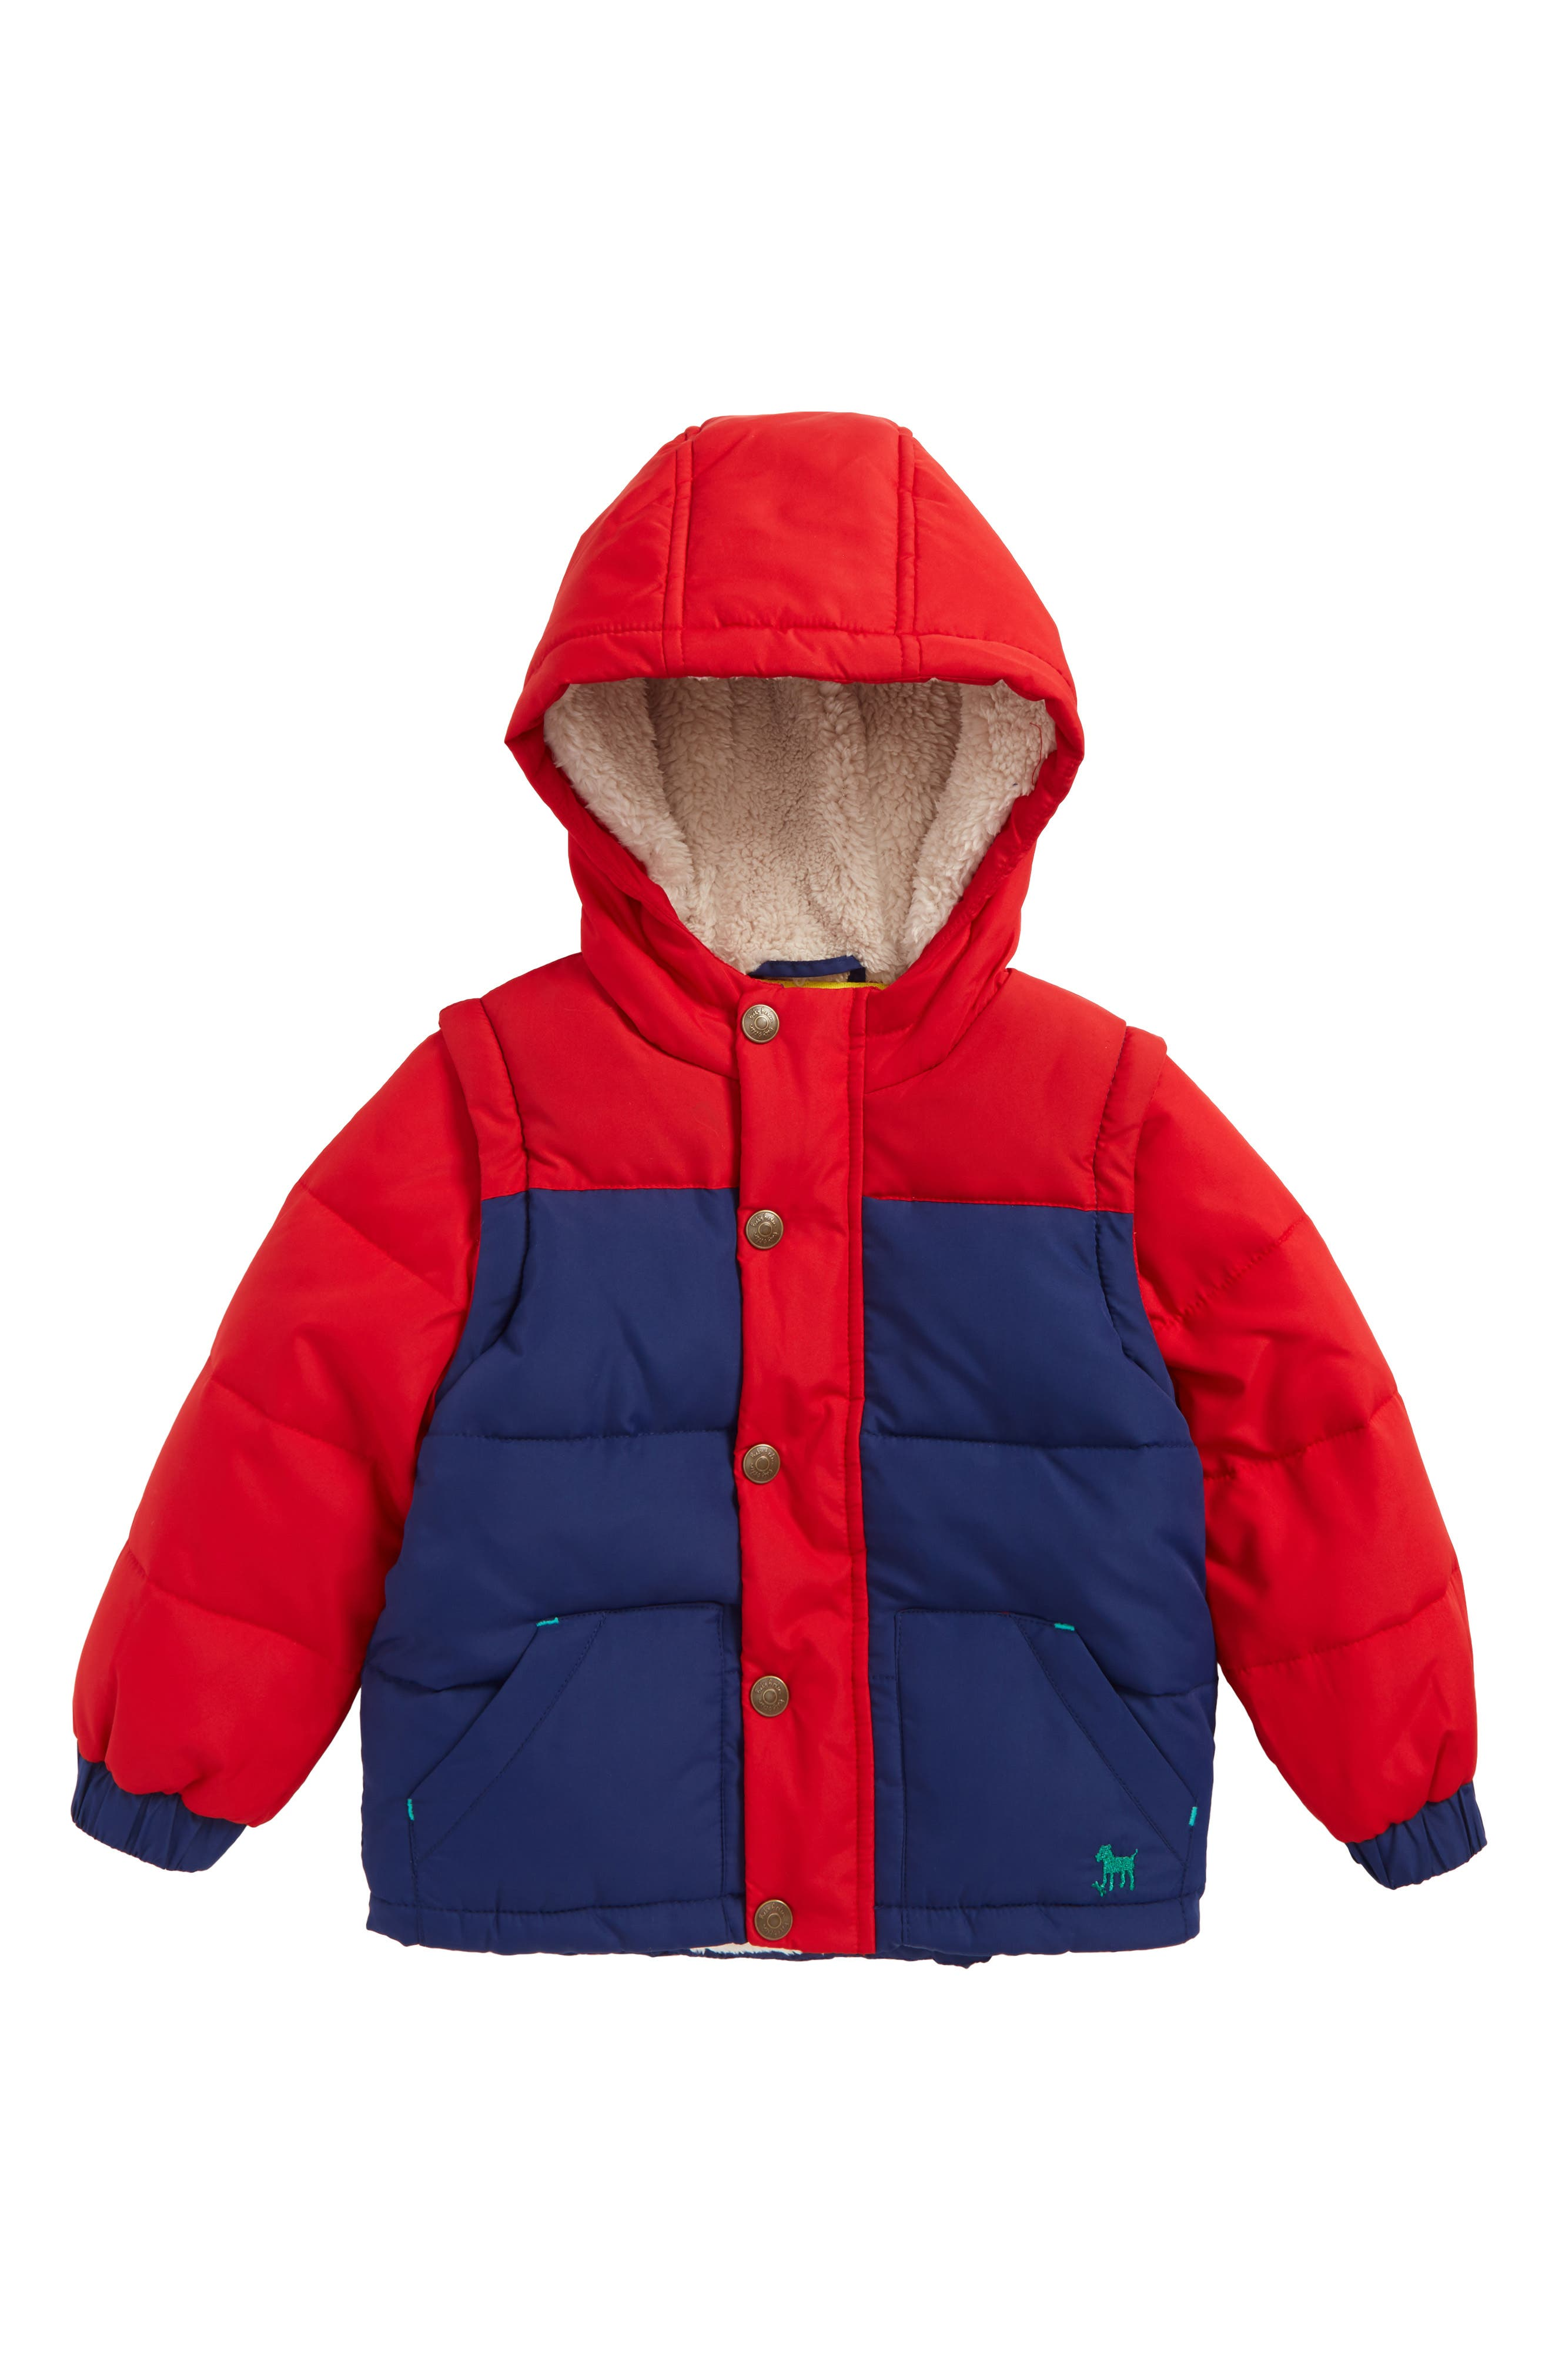 Main Image - Mini Boden 2-in-1 Cozy Jacket (Baby Boys & Toddler Boys)